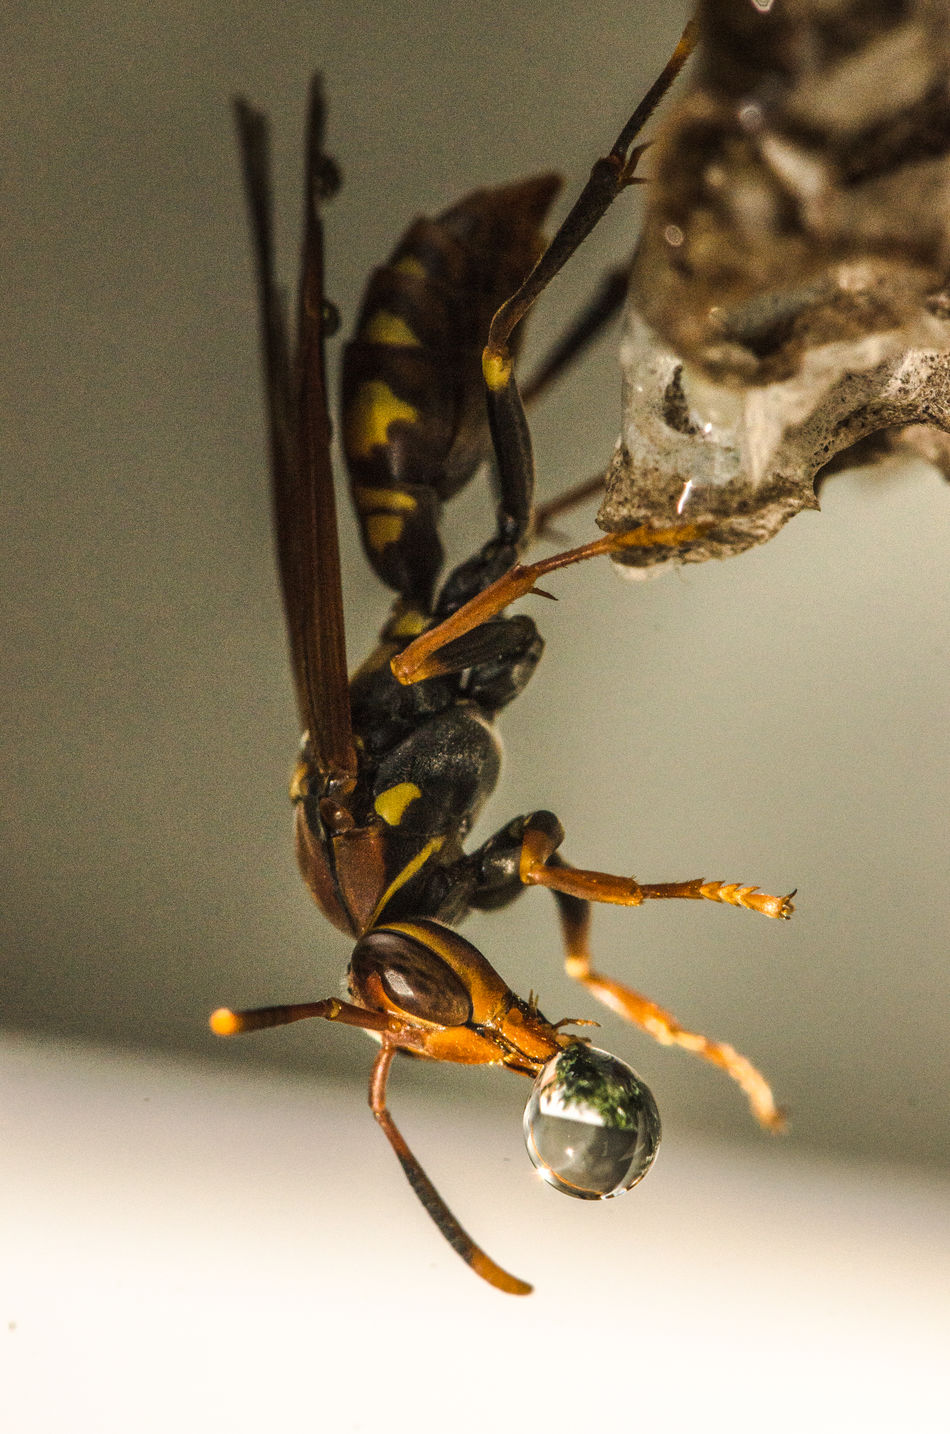 But if this was become wet, this can compromise the integrate of their hive. So, what was amazing to me was find out how they take out those wet drops of water. They, literally, spit it out. Hive Insect Insect Paparazzi Insect Photography Insects  Macro Macro Beauty Macro Insects Macro Nature Macro Photography Macro_perfection Macrophotography Nature Nature Photography Naturelovers Naturephotography Nest Wasp Wasp Macro Wasps Wasps Nest Wasps🐝